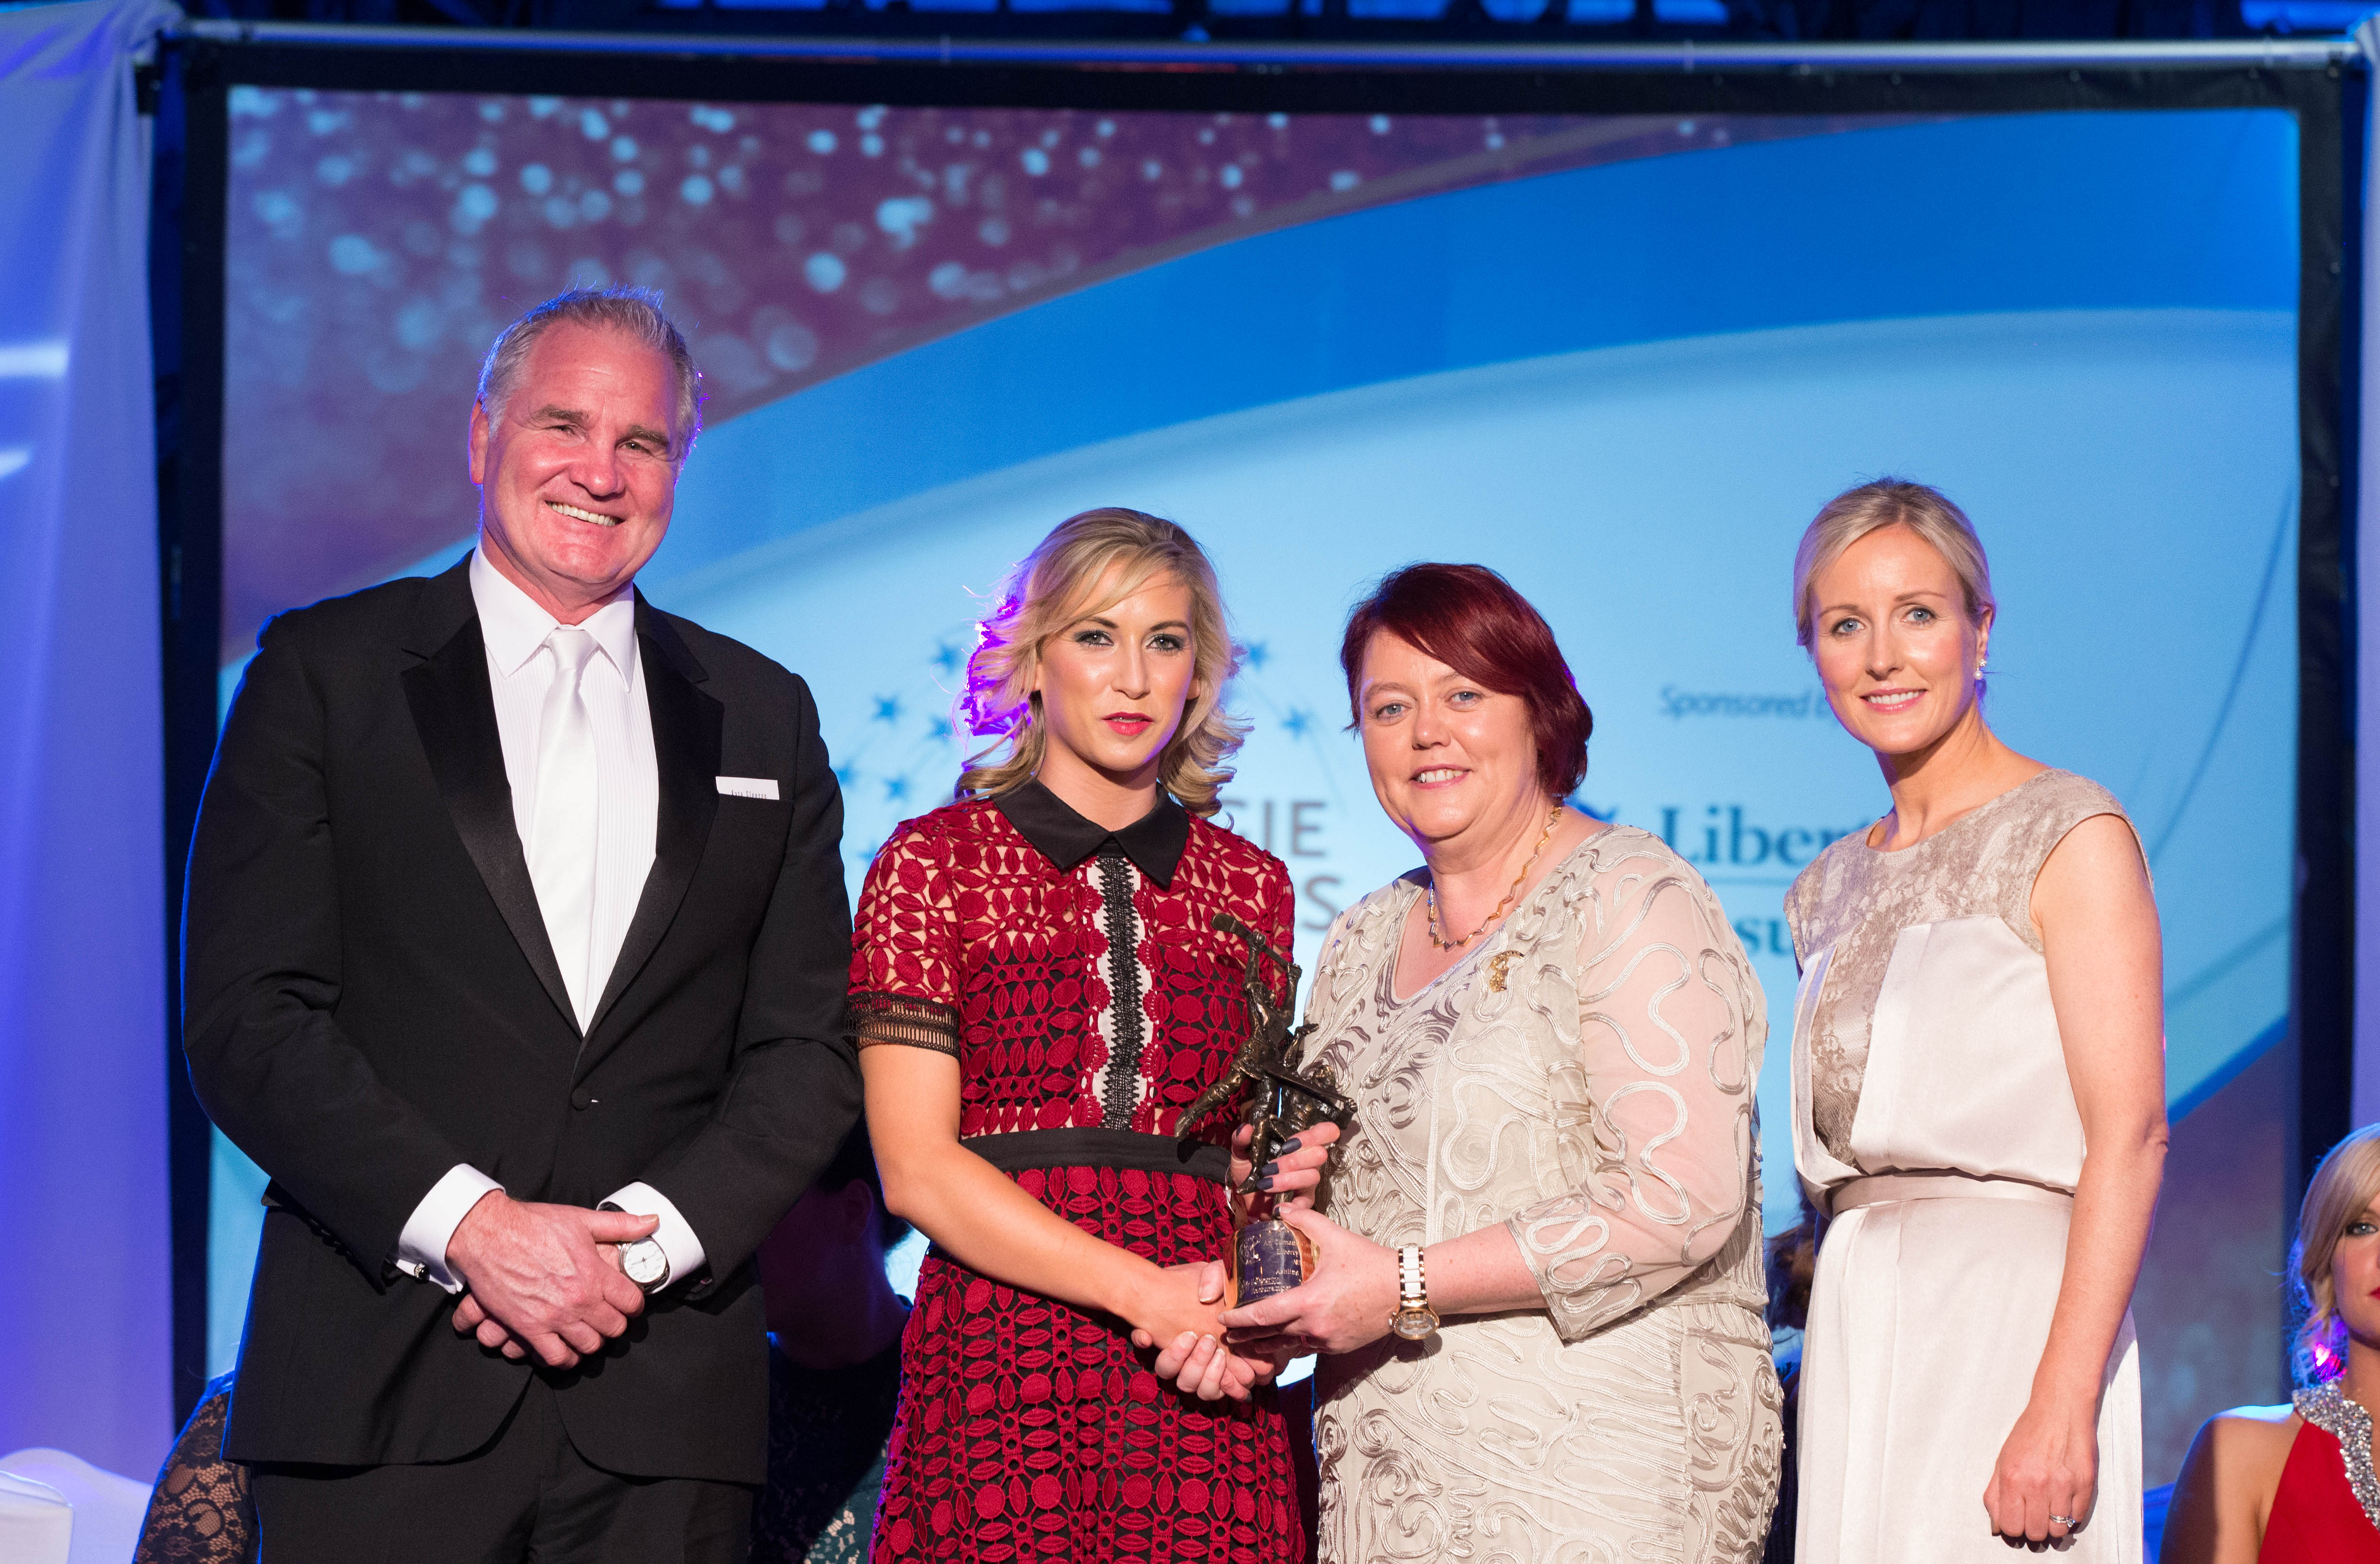 REPRO FREE***PRESS RELEASE NO REPRODUCTION FEE***  2015 Camogie All-Stars In Association With Liberty Insurance, Citywest Hotel, Dublin 7/11/2015  Niamh Kilkenny of Galway receives her Camogie All Star Award from Judy Mullane, Brand and Communications Manager, Liberty Insurance, Catherine Neary, President of the Camogie Association, and special guest Brent Pope Mandatory Credit ©INPHO/Cathal Noonan